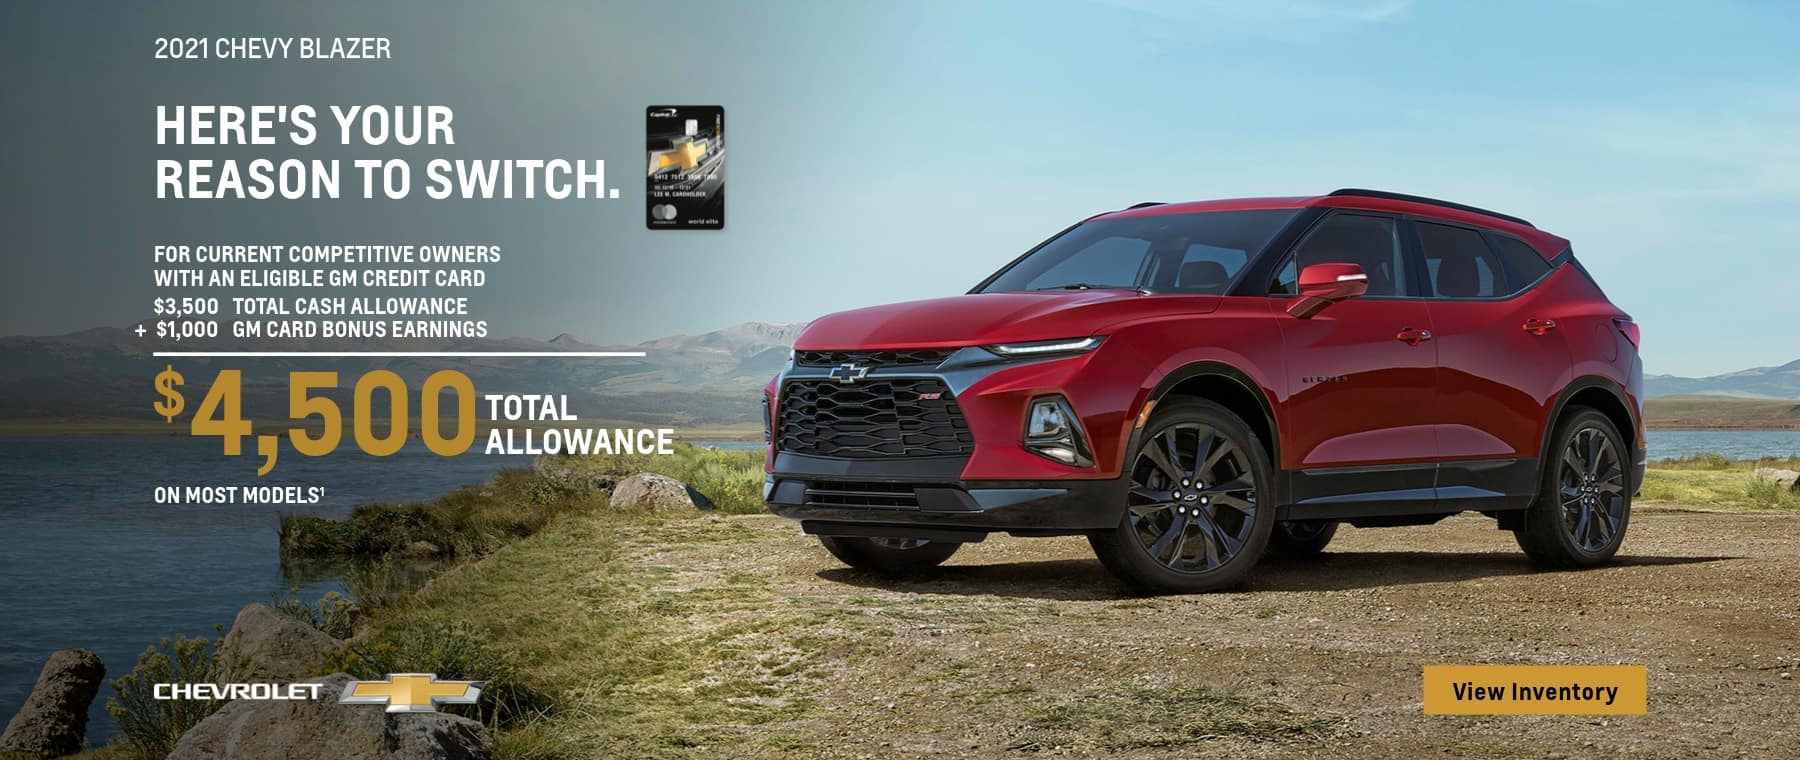 2021 chevy blazer for current competitive owners with an eligible gm credit card $3,500 total cash allowance + $1,000 gm card bonus earnings chevrolet total allowance view inventory on most models